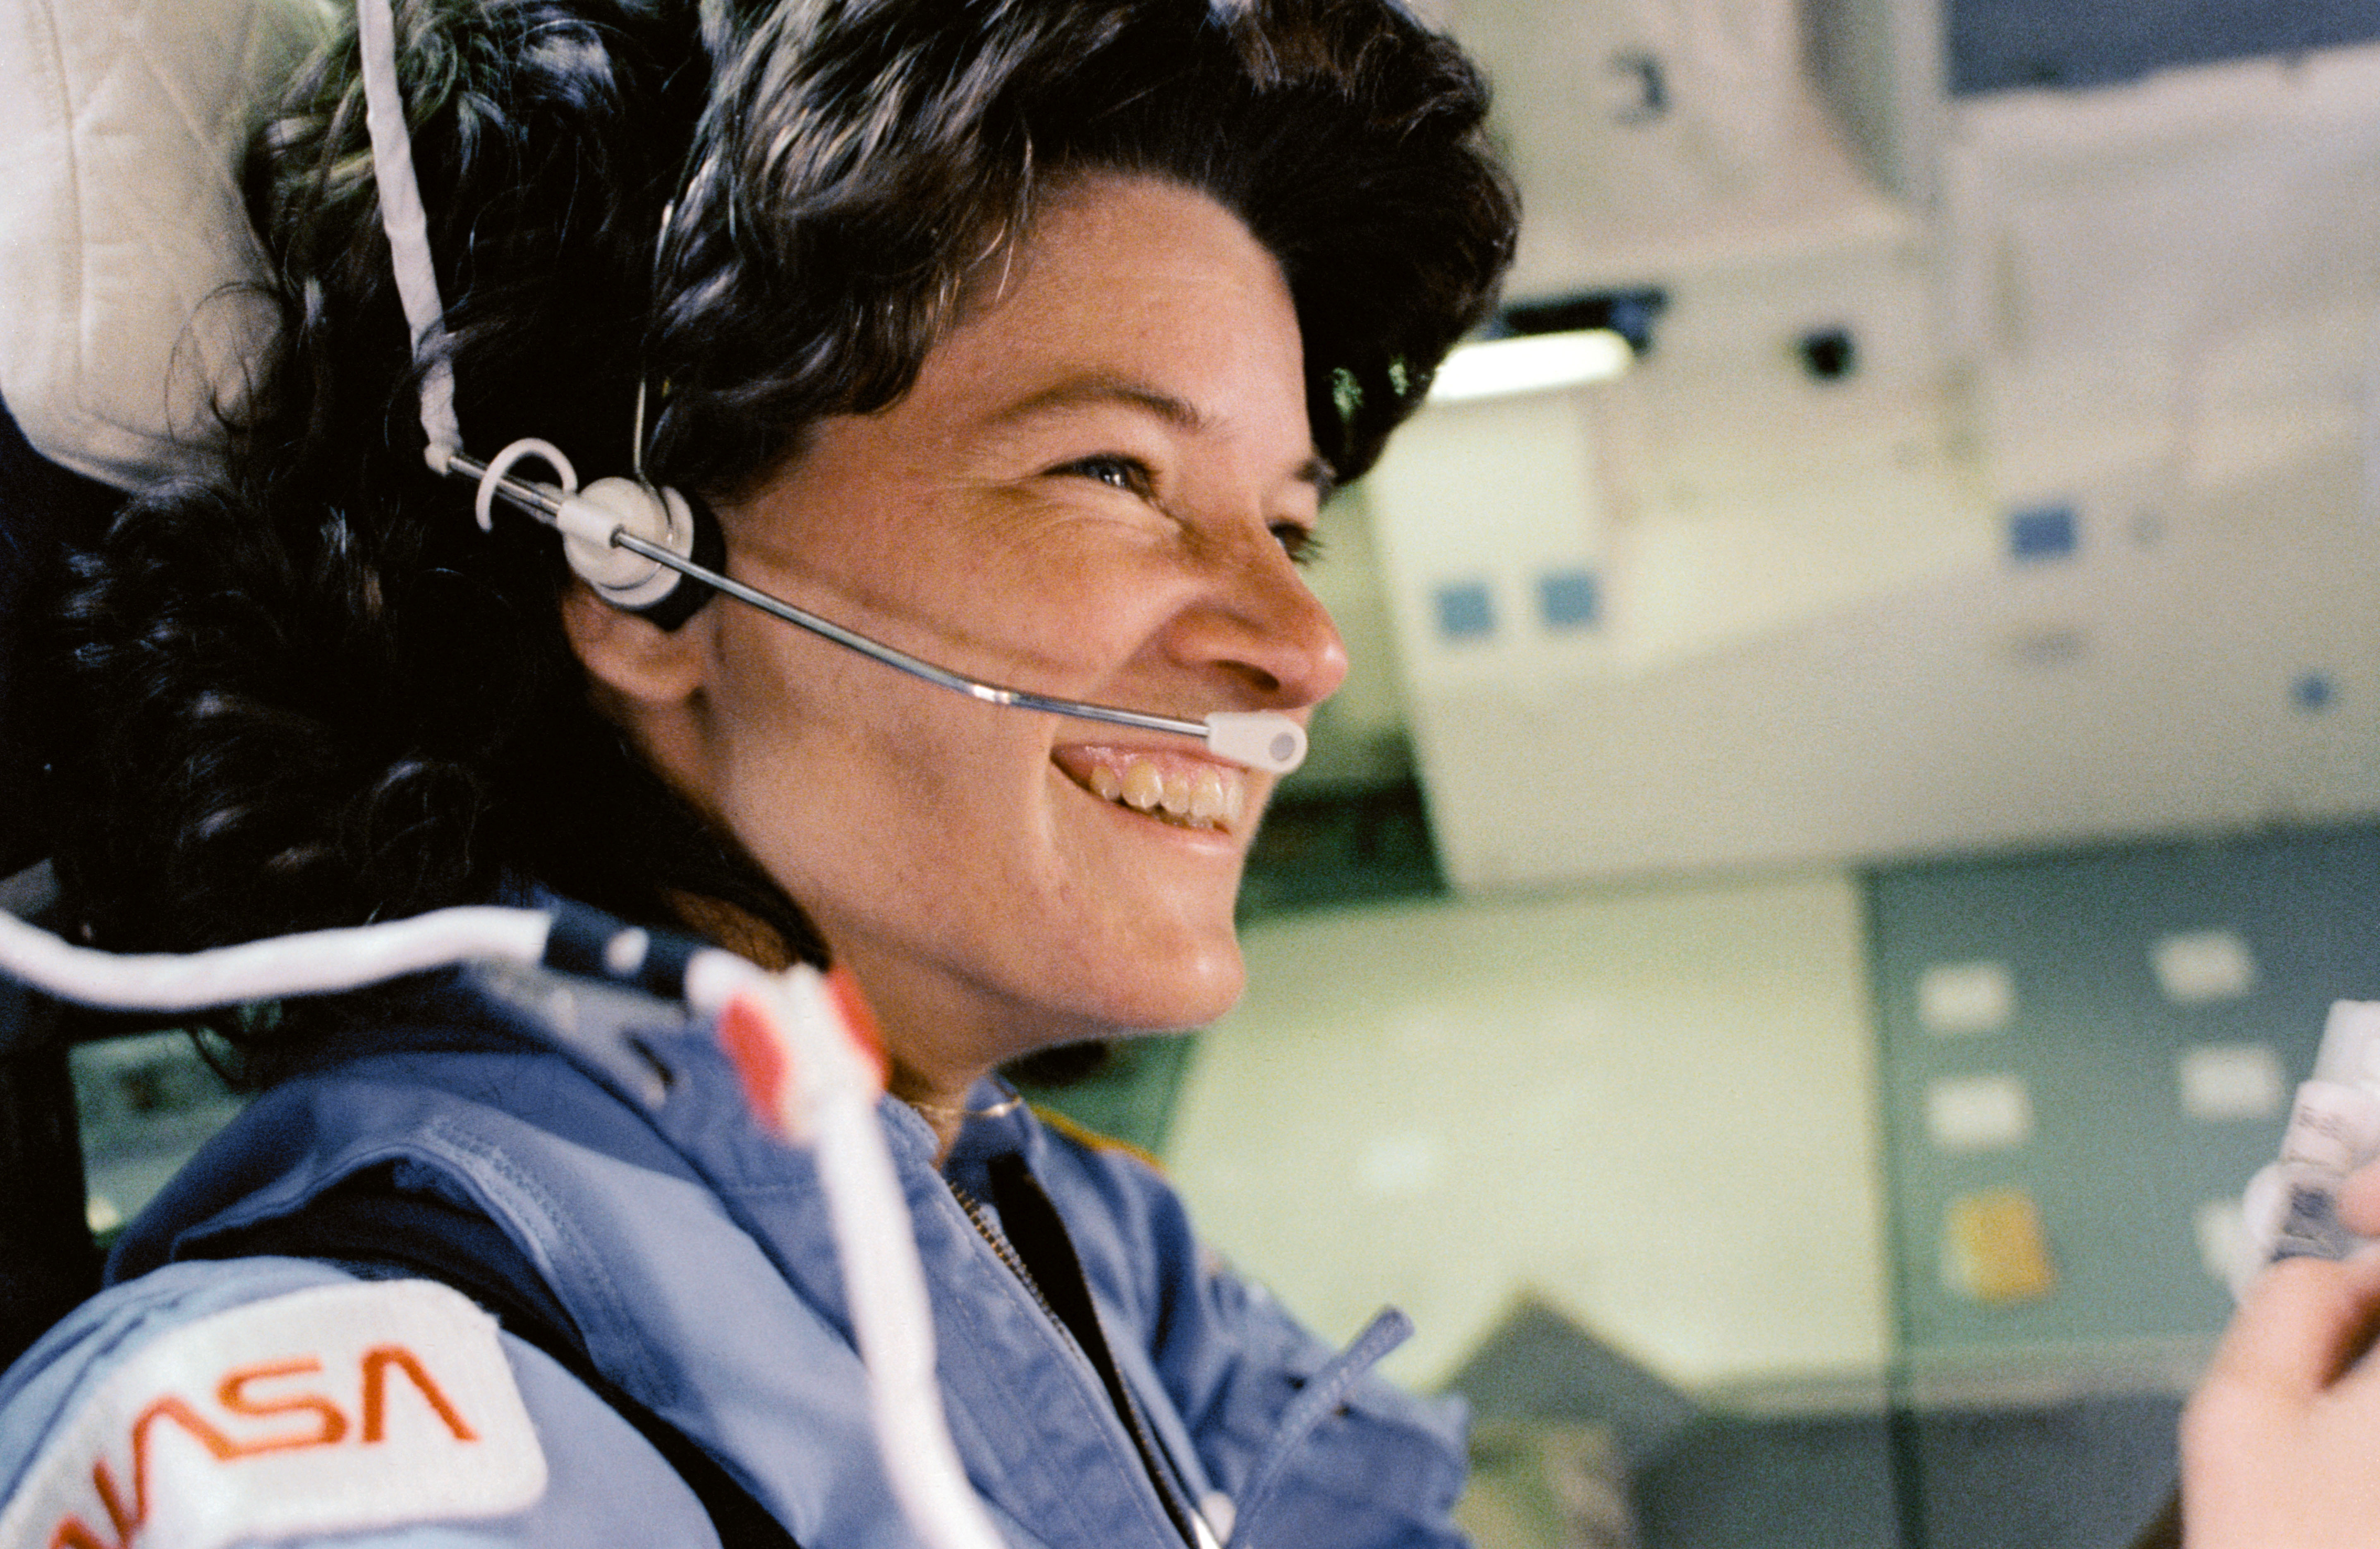 sally ride Trailblazing astronaut and physicist sally ride in conversation with gloria steinem about gender in science and how lazy media portrayals perpetuate stereotypes a marvelous lost interview, found and animated read article.